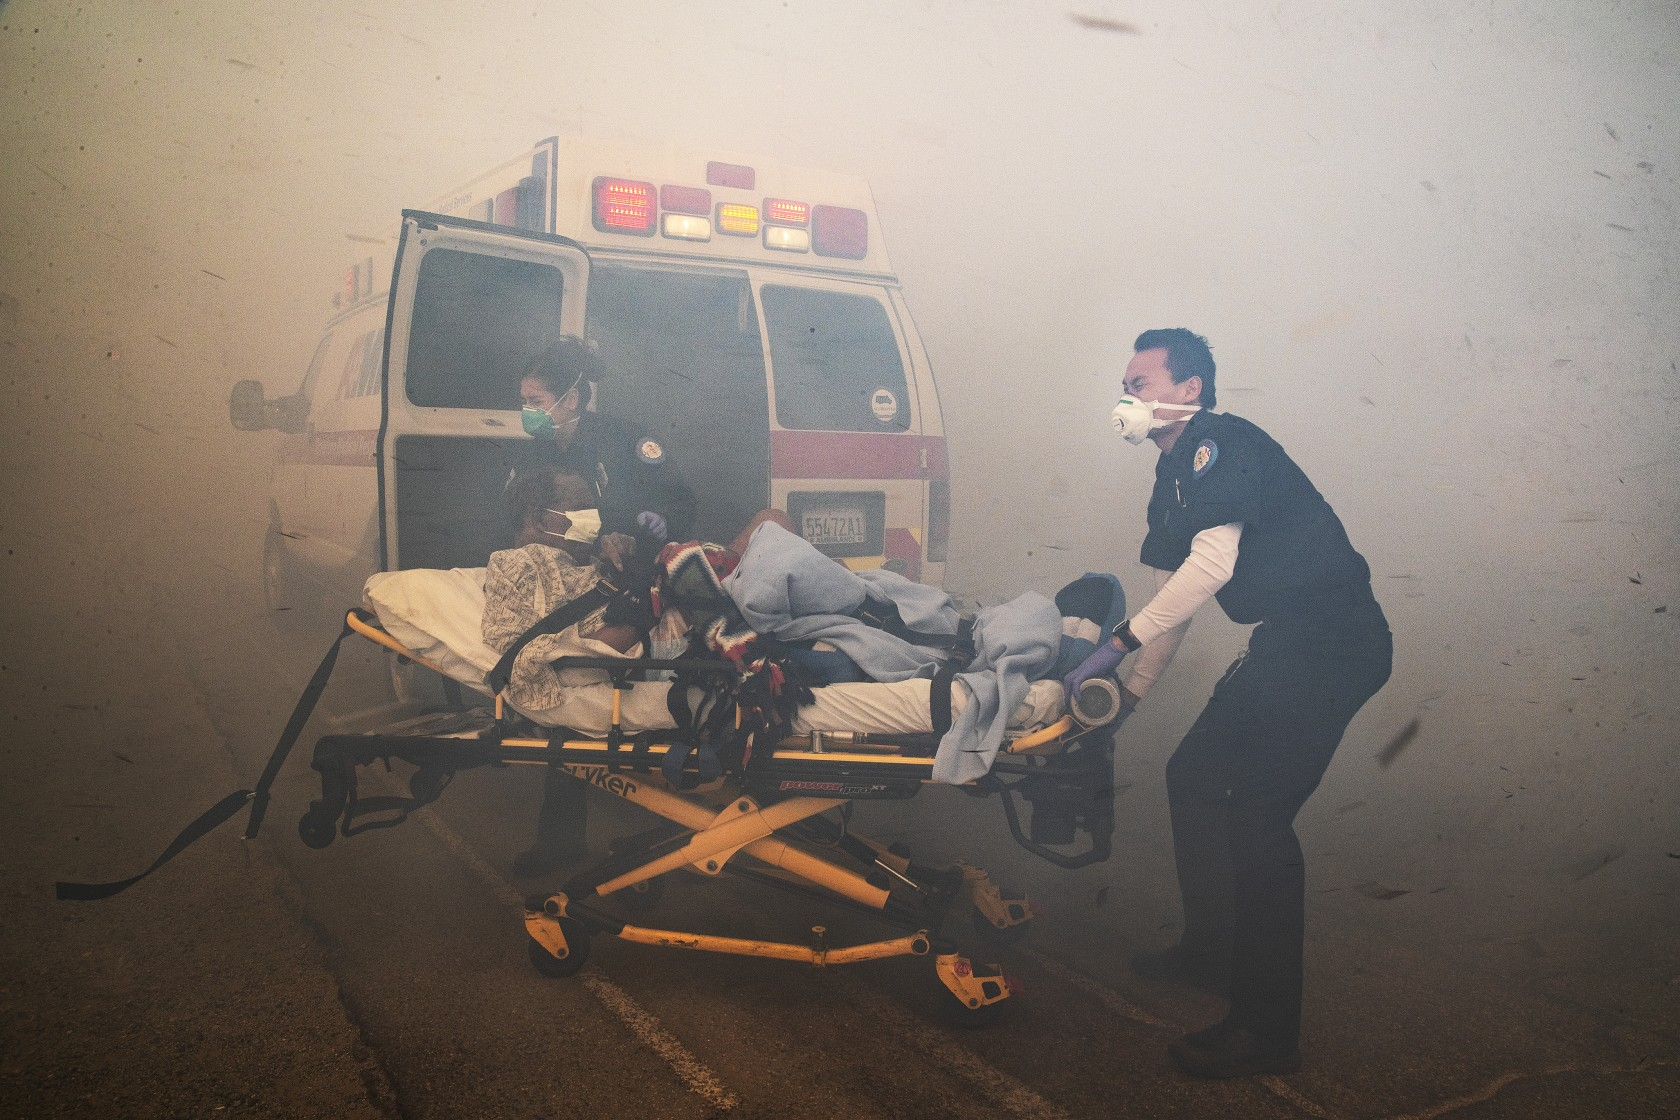 Paramedics battle thick smoke to evacuate a resident from the Riverside Heights Healthcare Center on Oct. 30 as the hill Fire burned dangerously close to the facility in Jurupa Valley. (Credit: Gina Ferazzi/ Los Angeles Times)